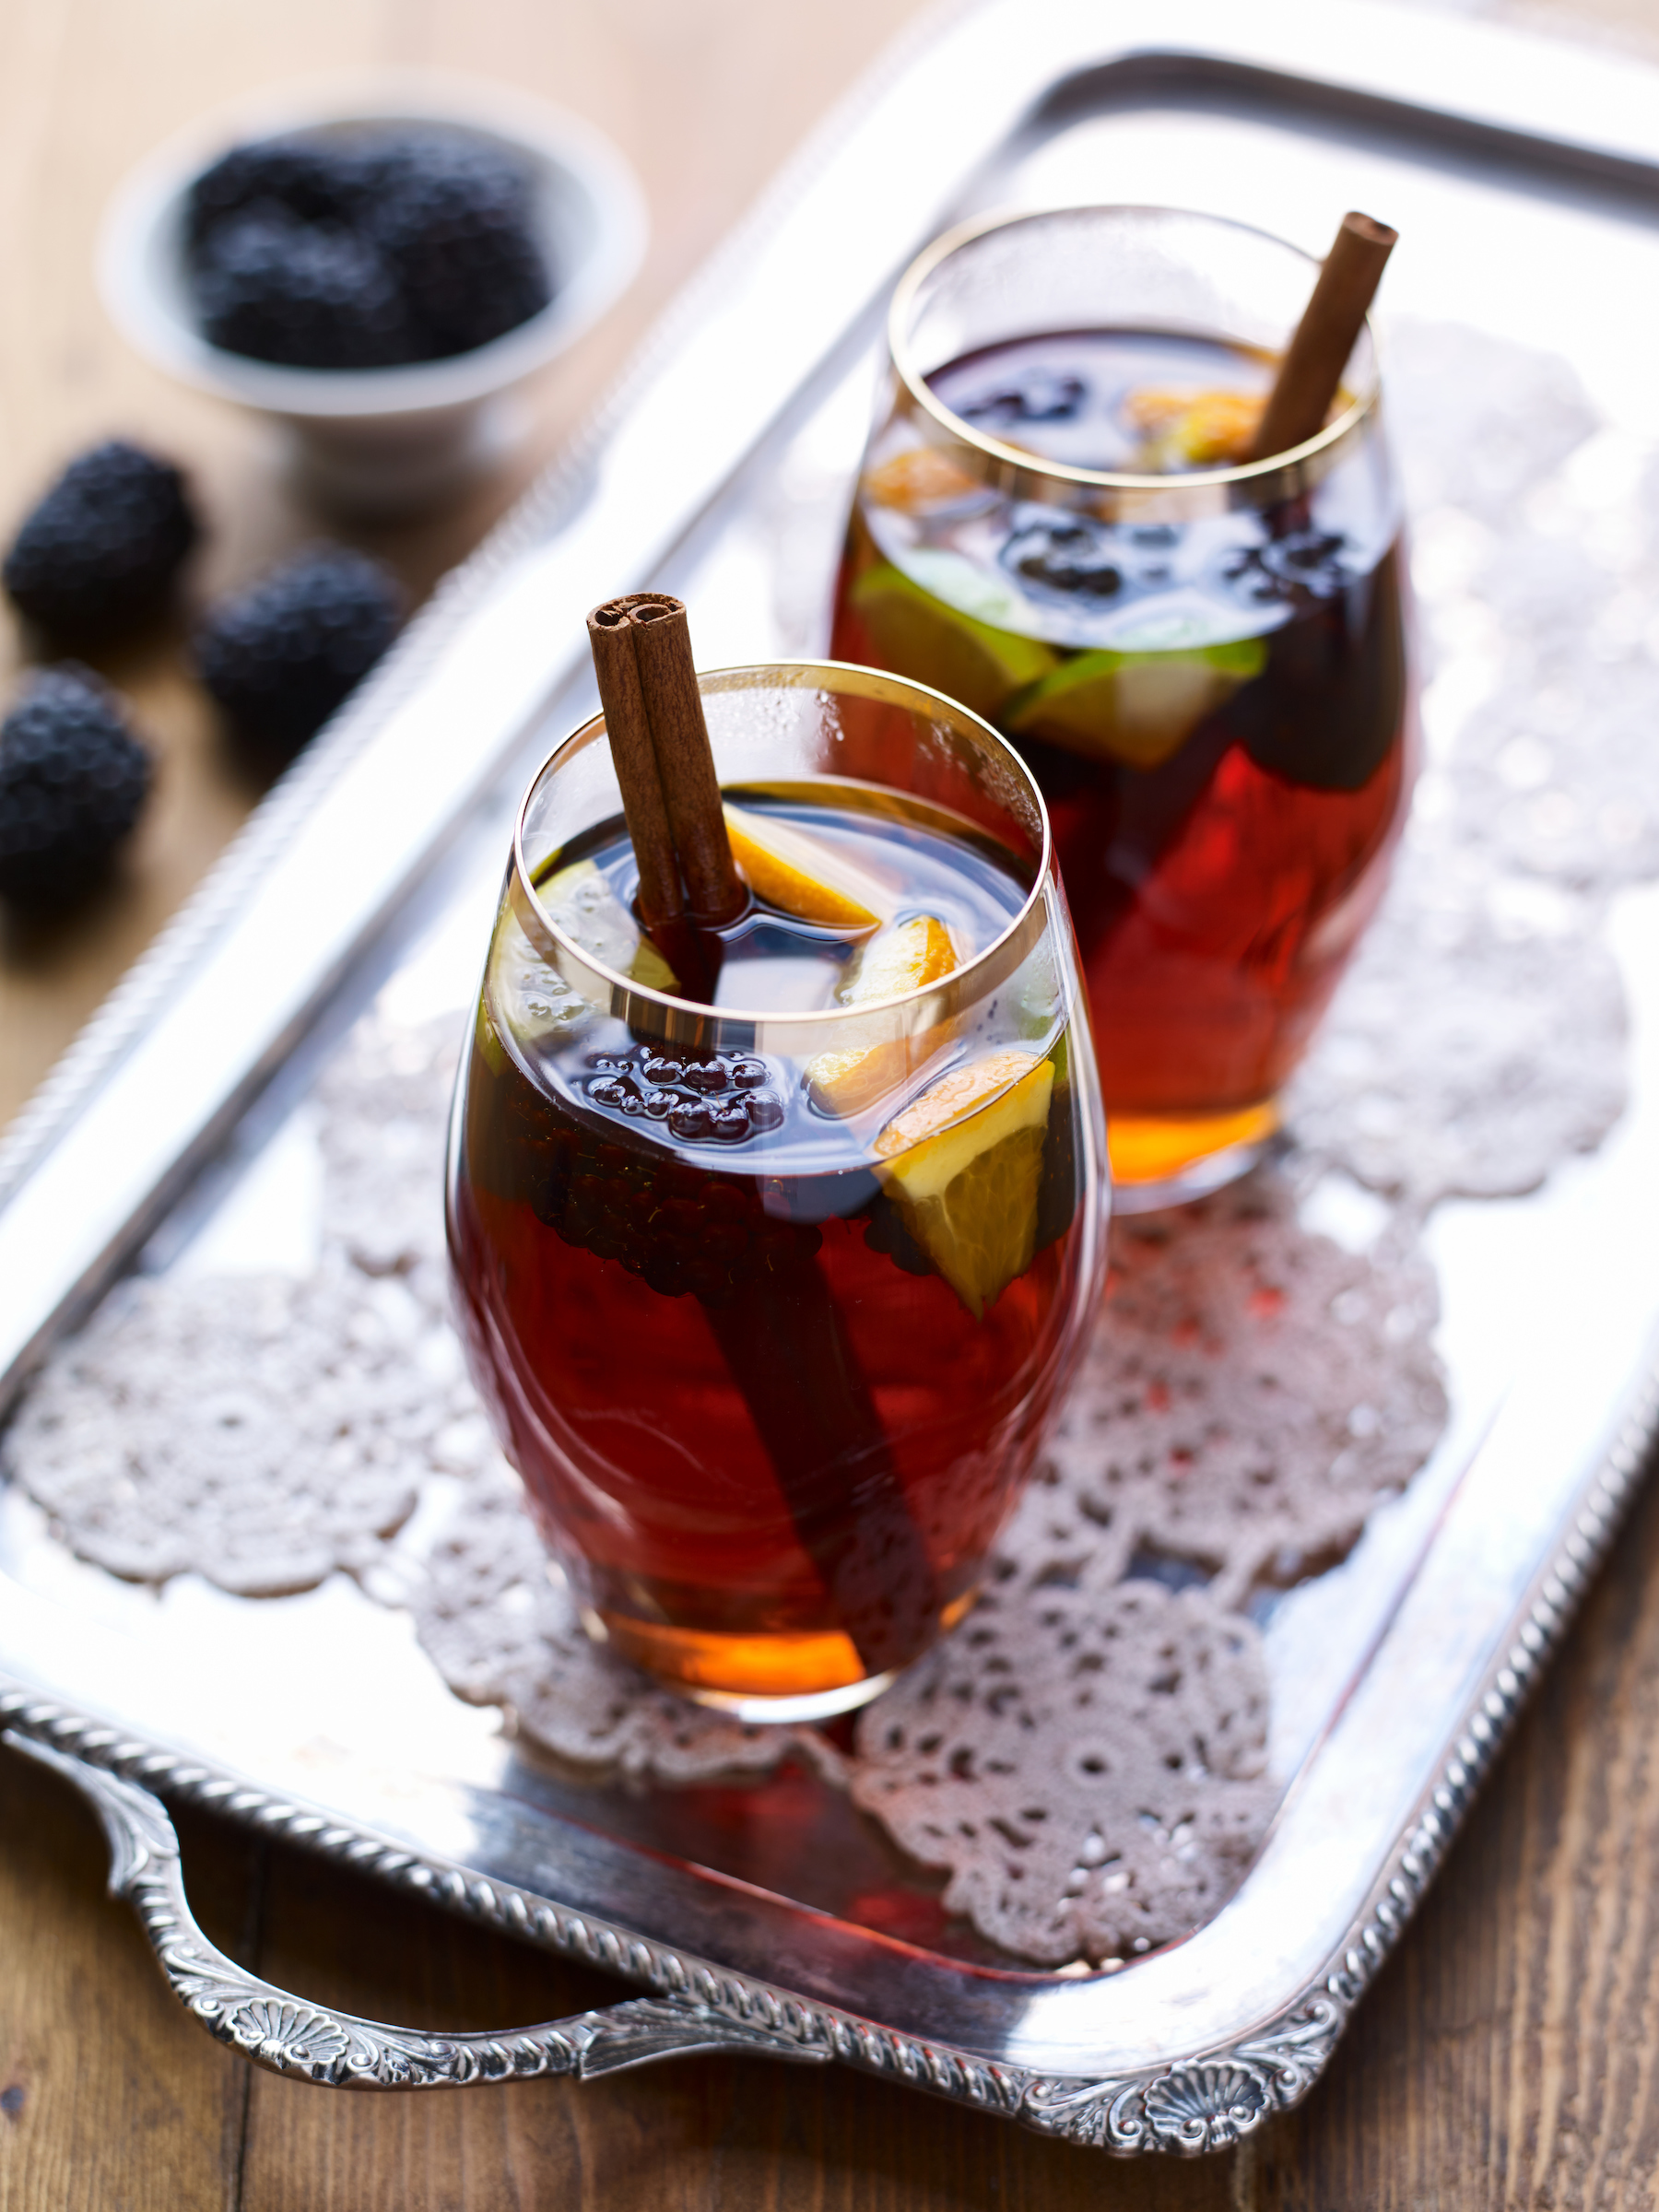 BerryWorld Winter Pimm's